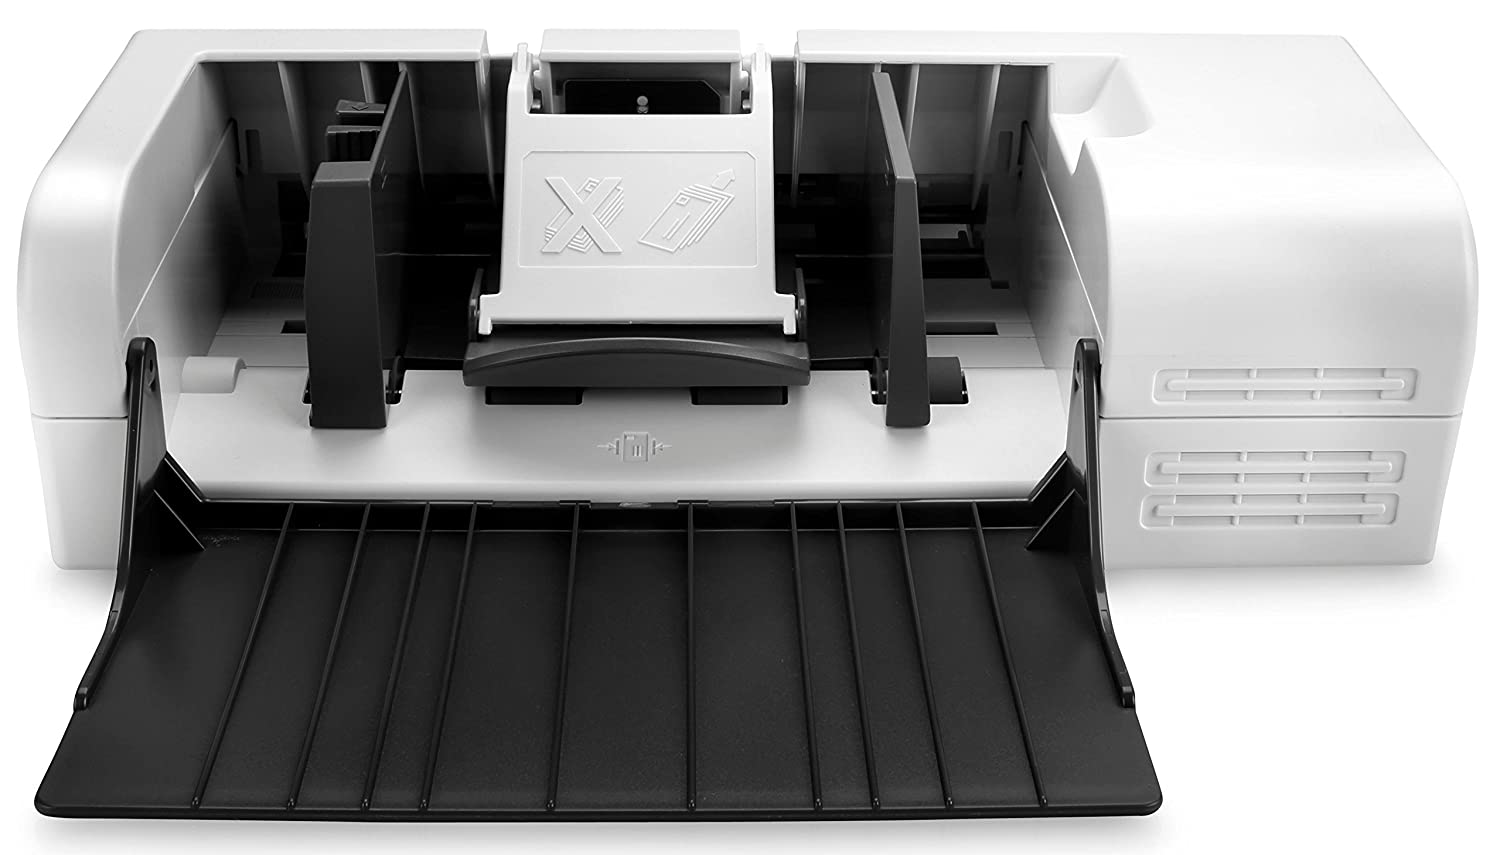 output hp feeder printer en envelope input and optional series multifunction devices laserjet